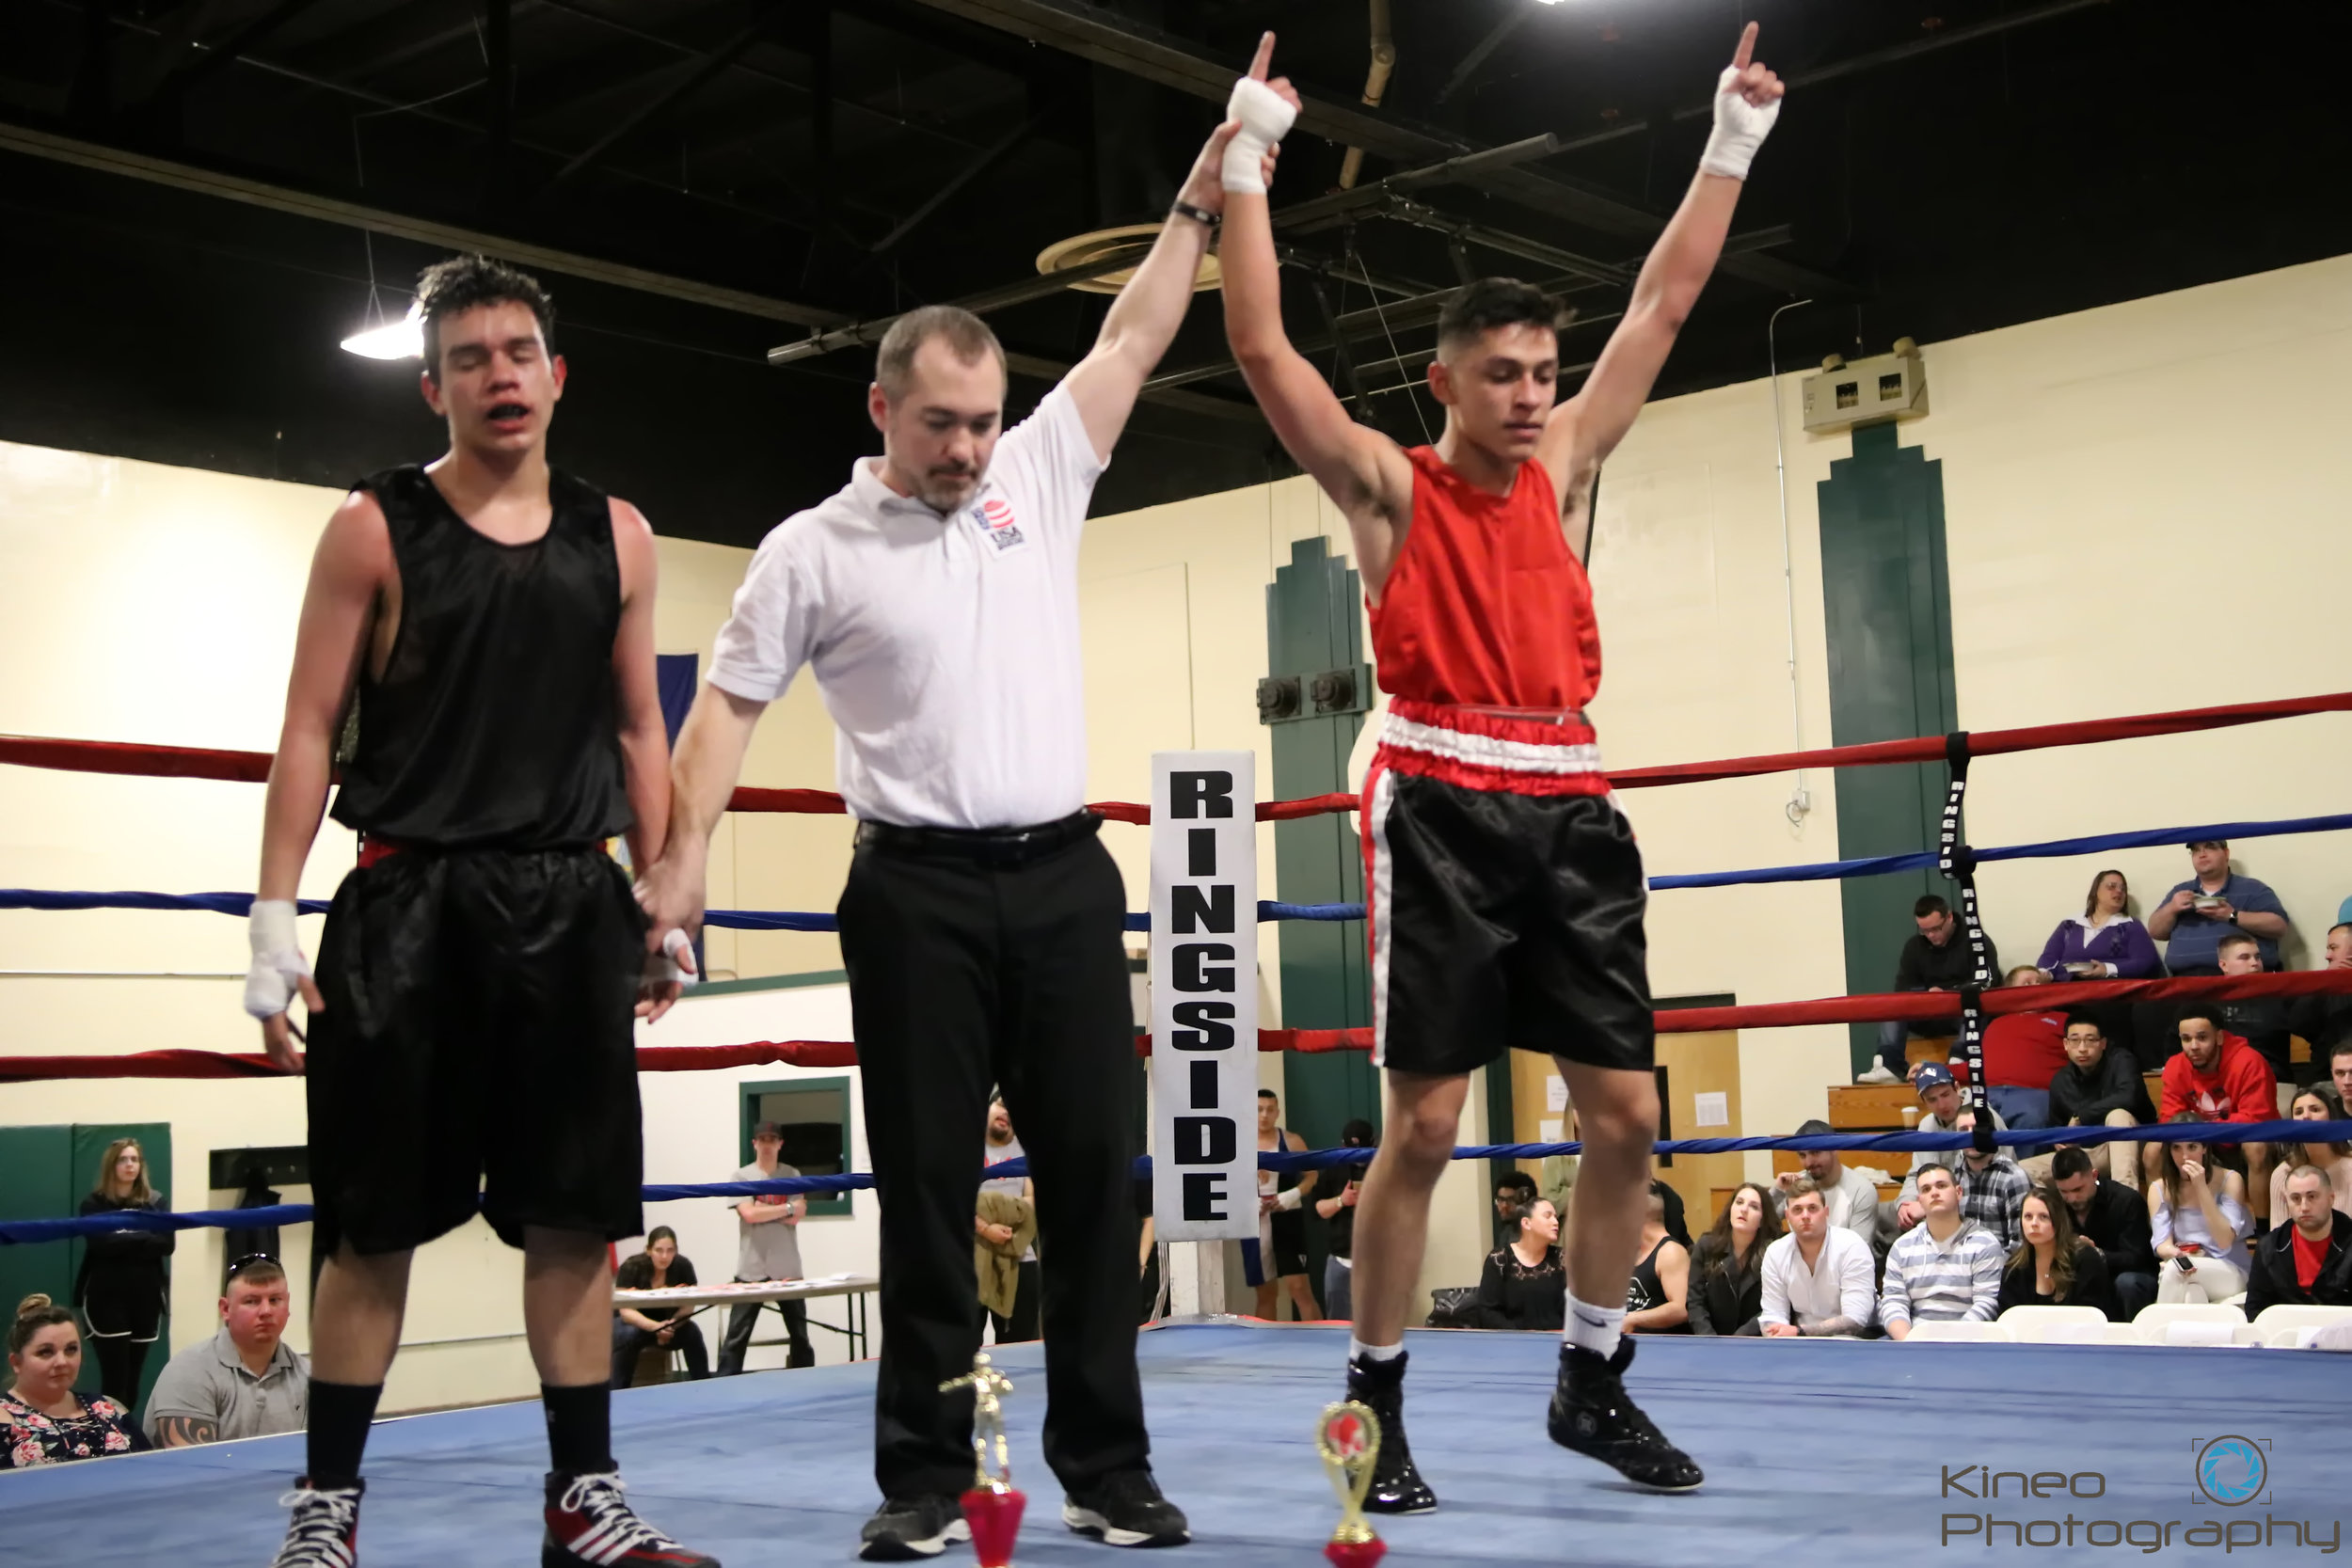 Portland Boxing Club's Anthony Riga, of South Portland, ME, (right) defeats Axel Cujantes, of Stamford, CT, at Knock Out Cancer Boxing Night at the Windsor Recreation Center in Windsor, VT.  Photo courtesy Kineo Photography.